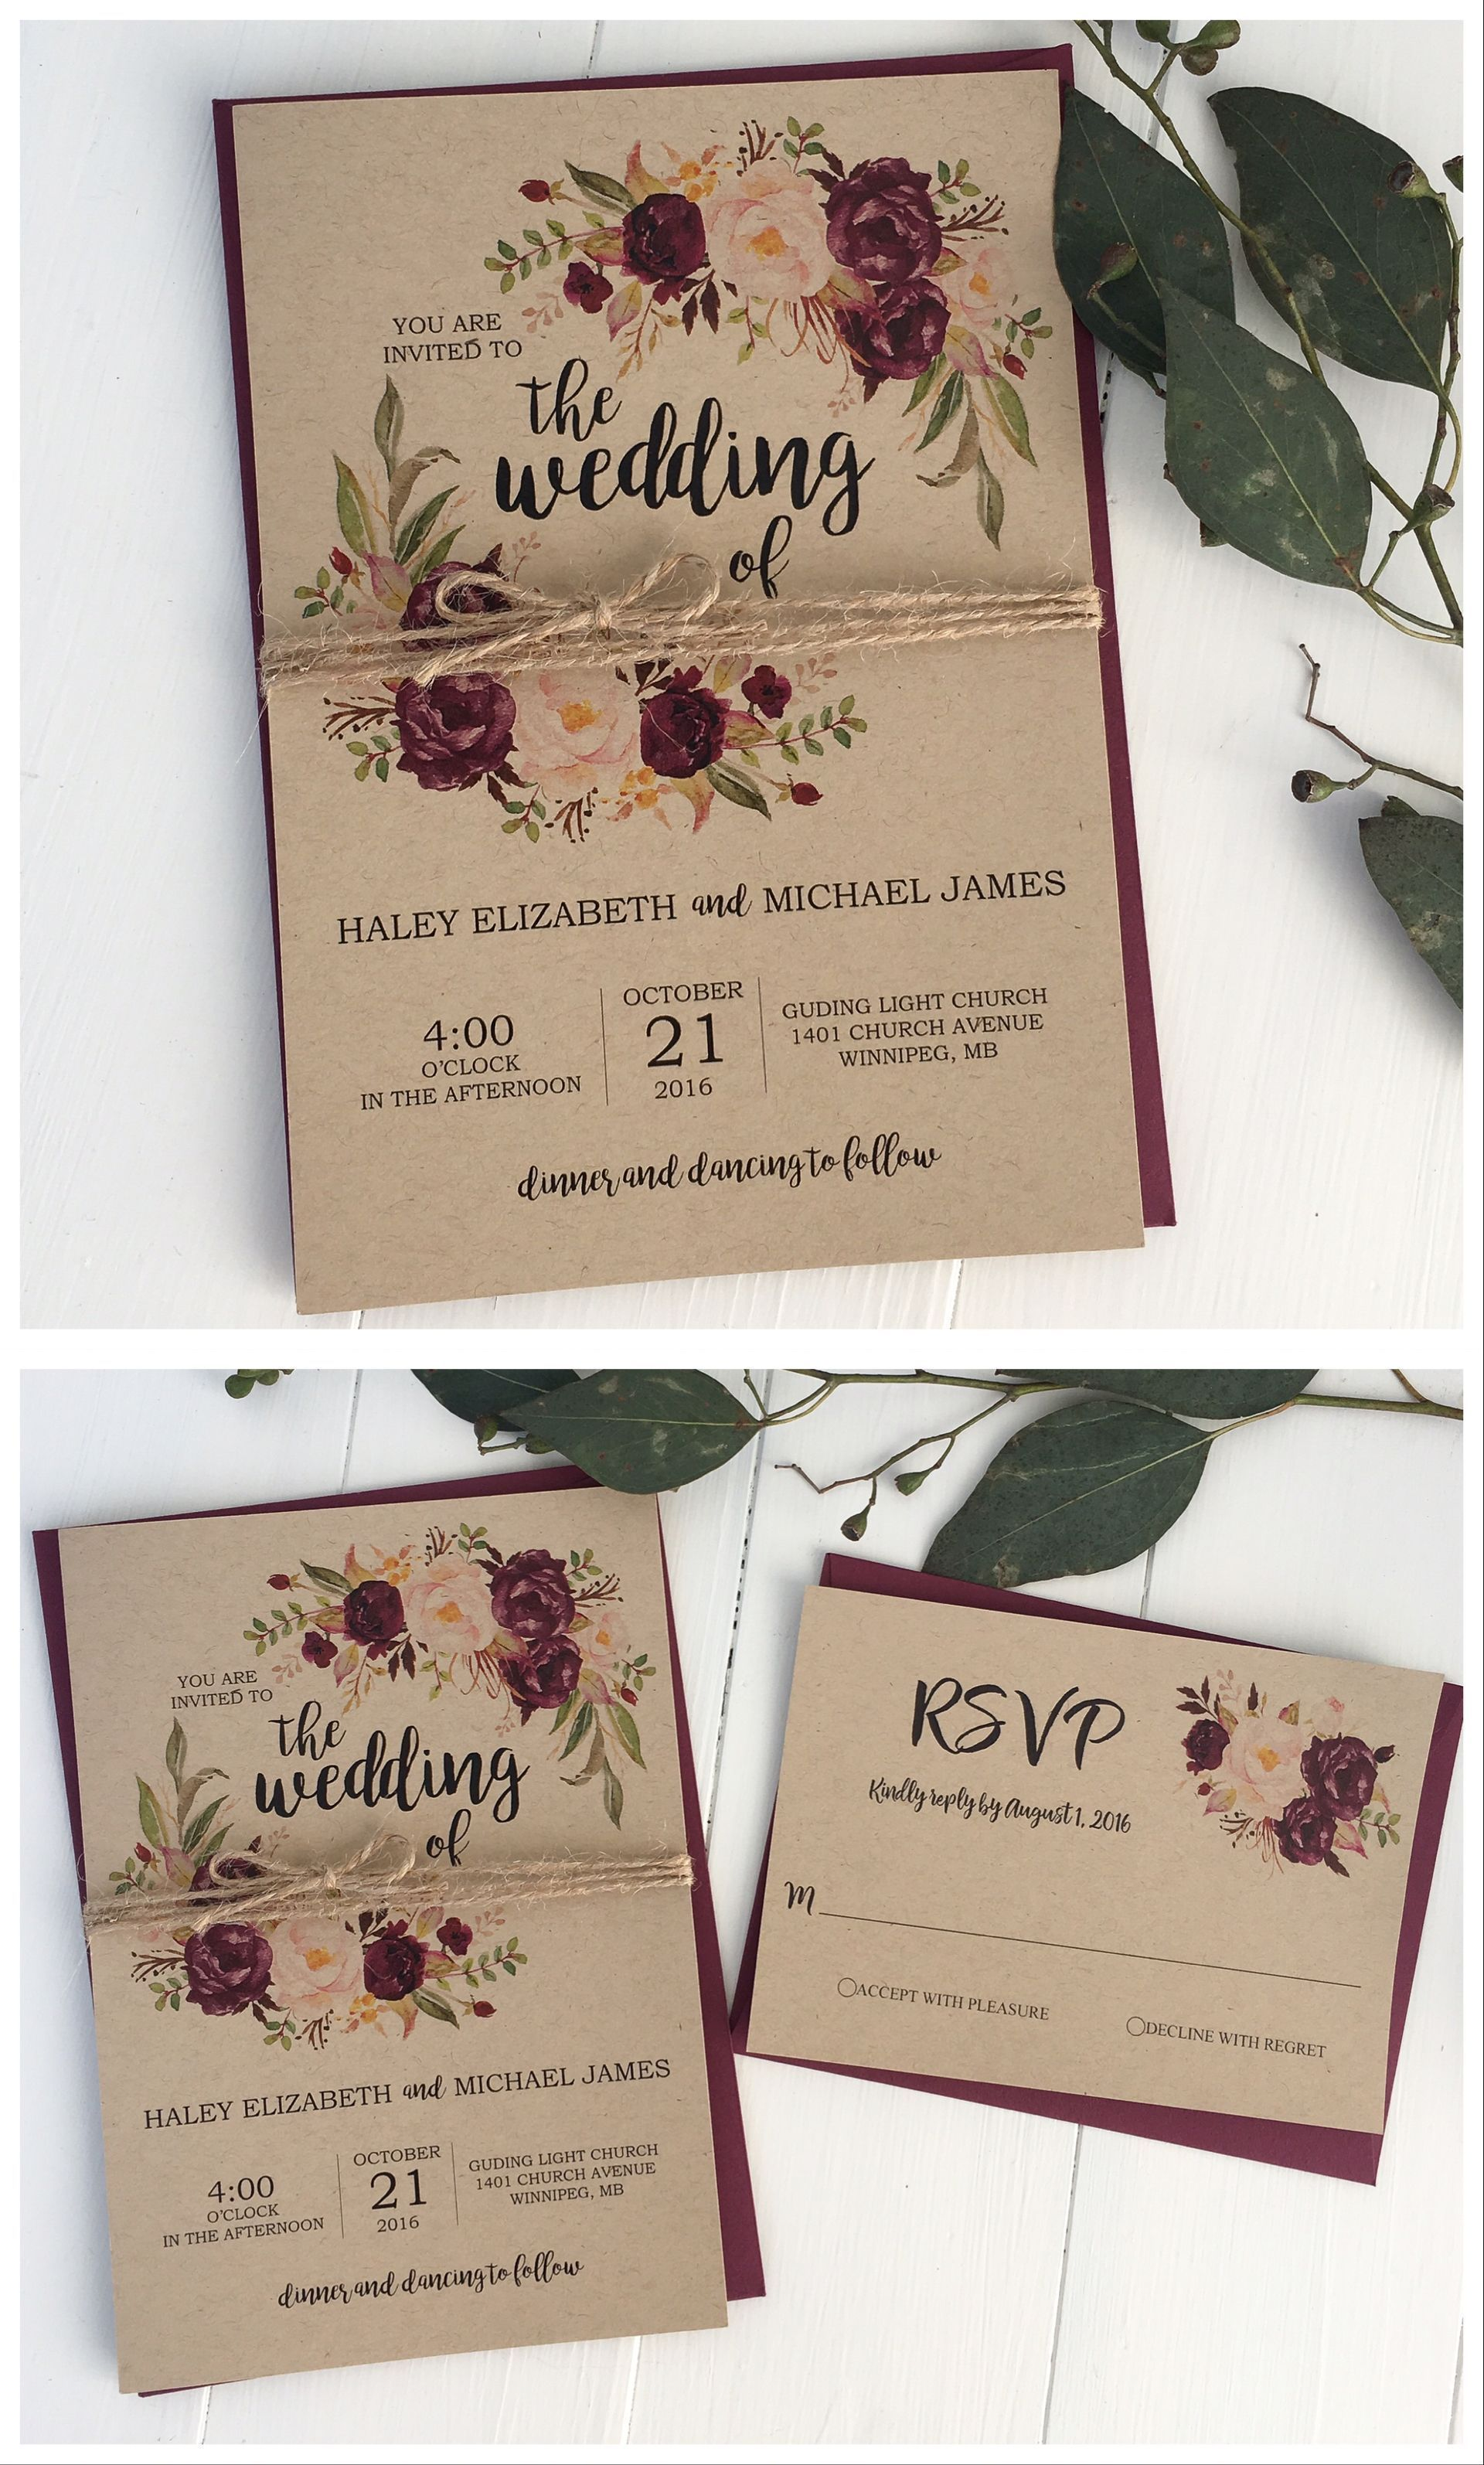 ideas for country wedding invitations%0A Rustic Country Wedding Invitation   Autumn Leaves on Faux Burlap  PRINTED  Wine Ribbon   Textured background  Autumn colours and Twine